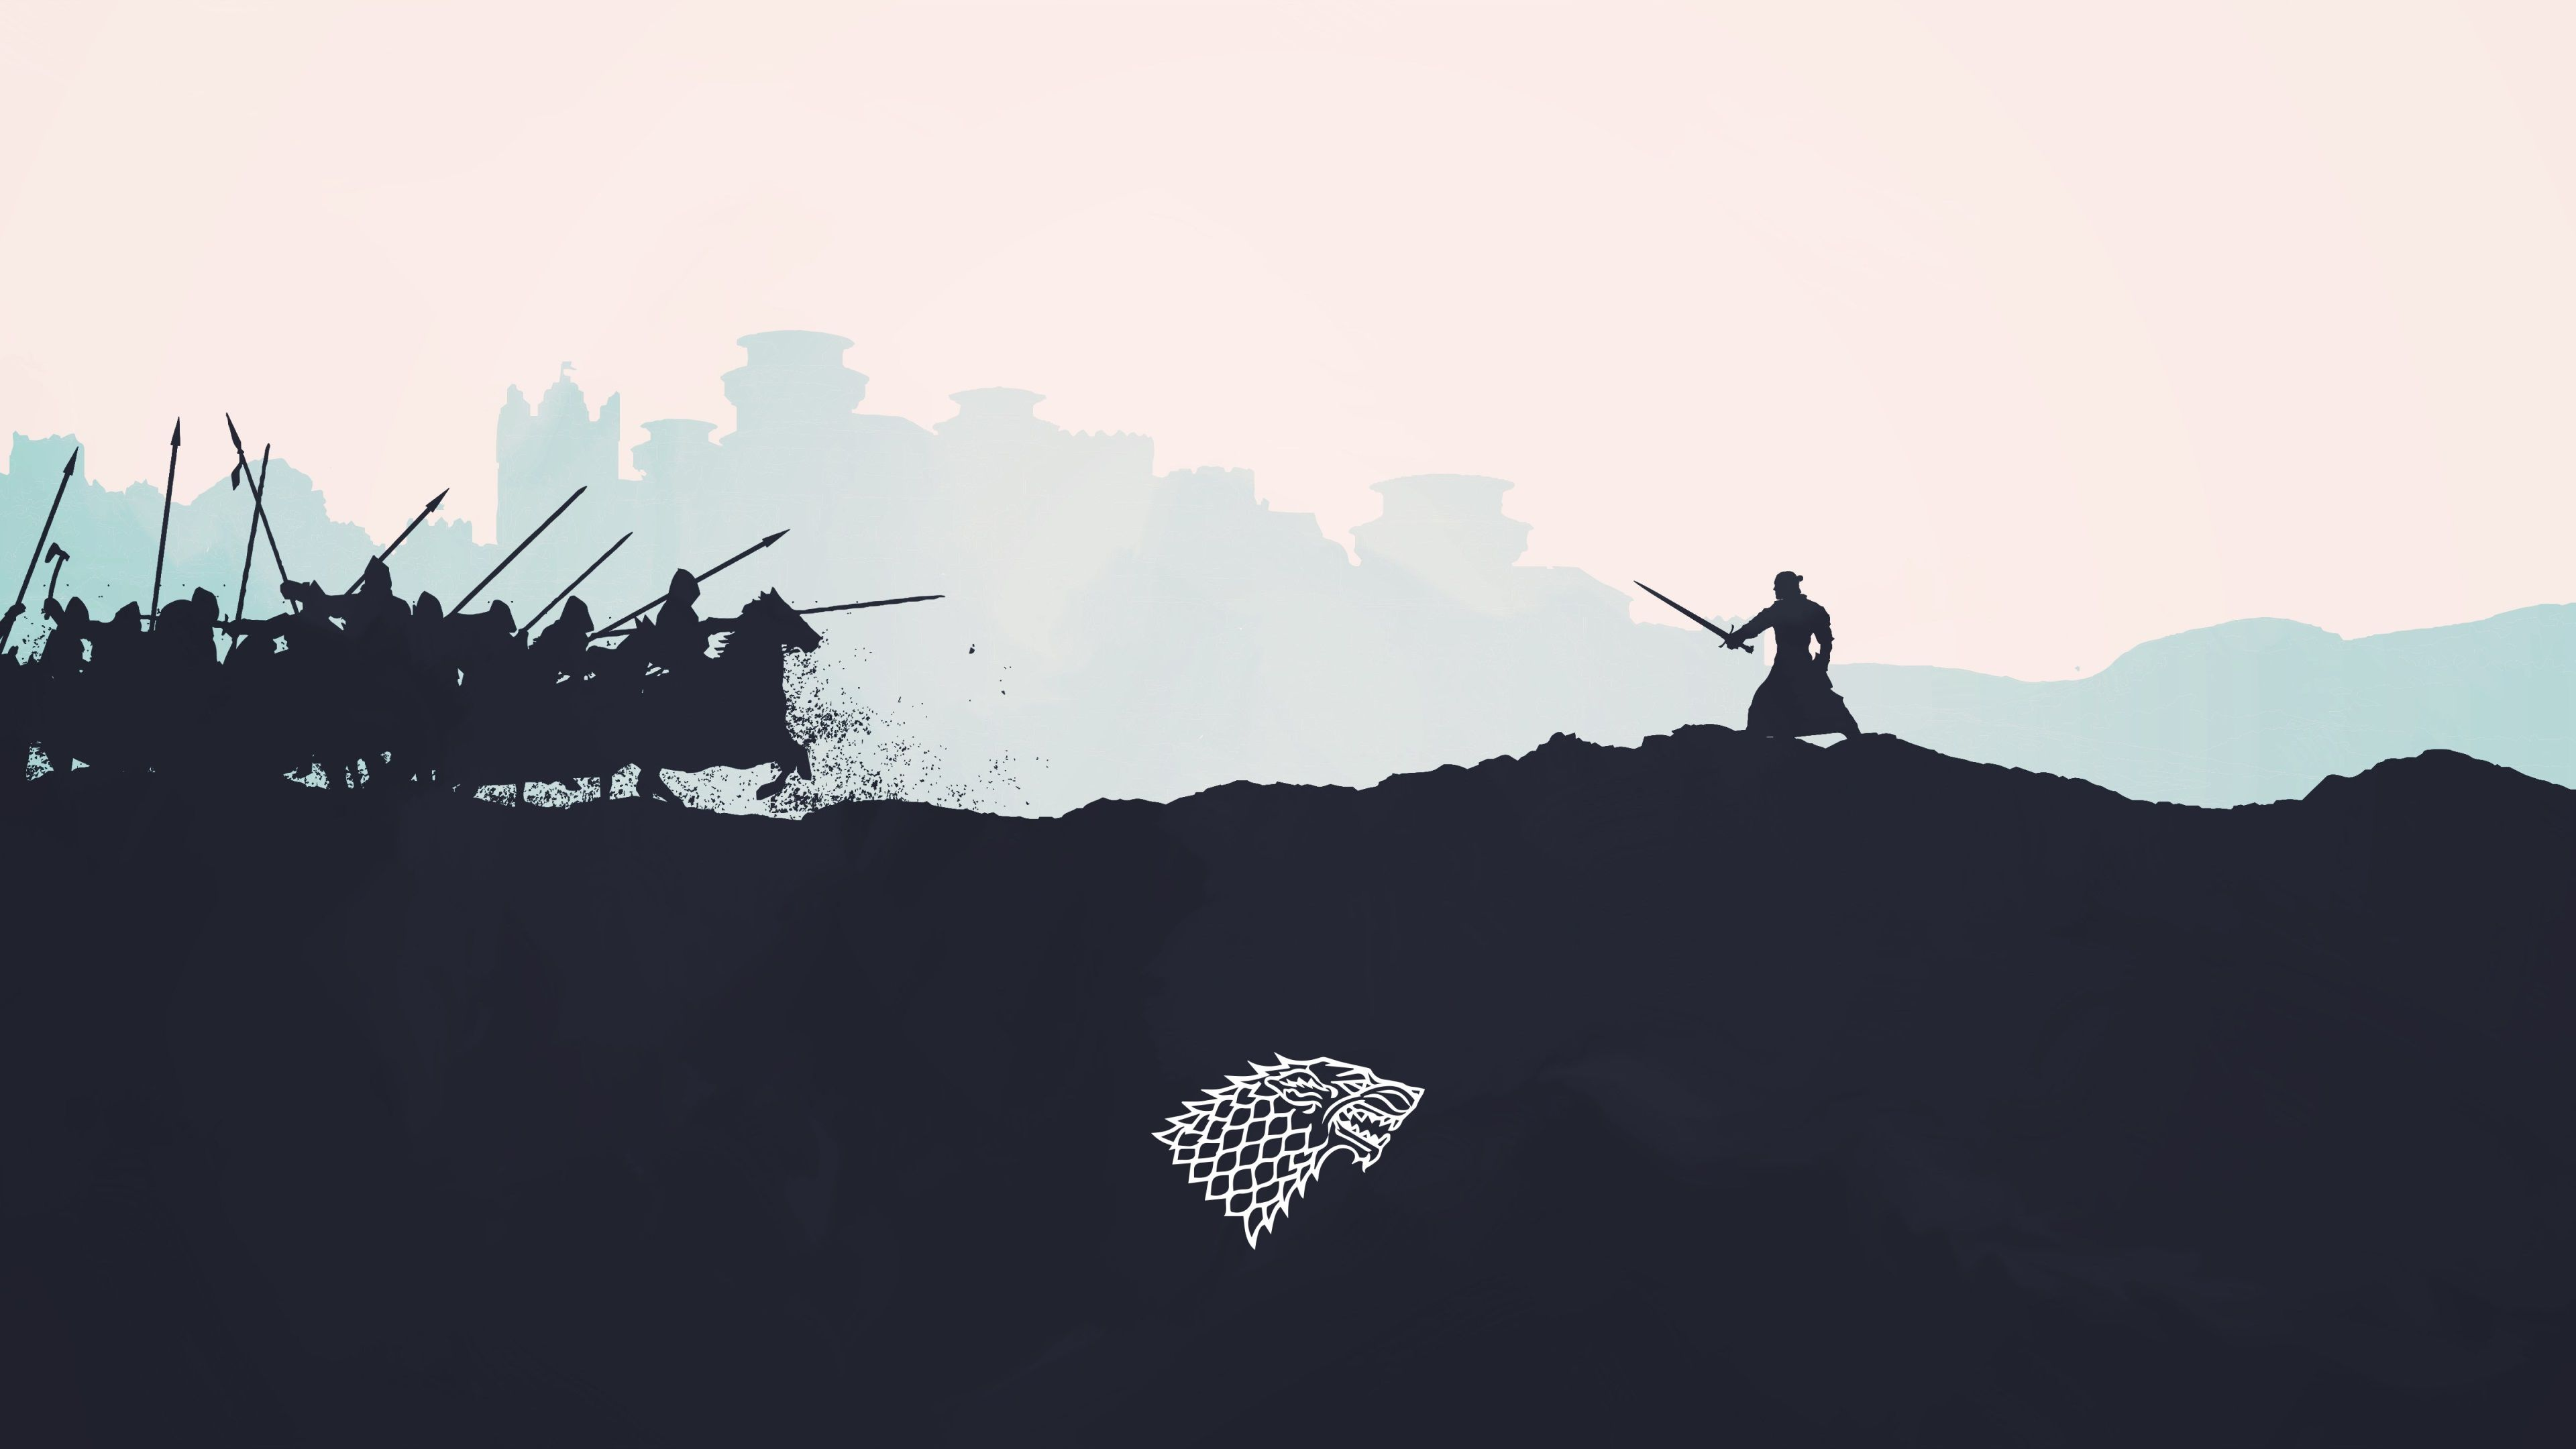 3840x2160 Game Of Thrones 4k Desktop Backgrounds Wallpaper Desktop Wallpapers Backgrounds Silhouette Art Game Of Thrones Artwork